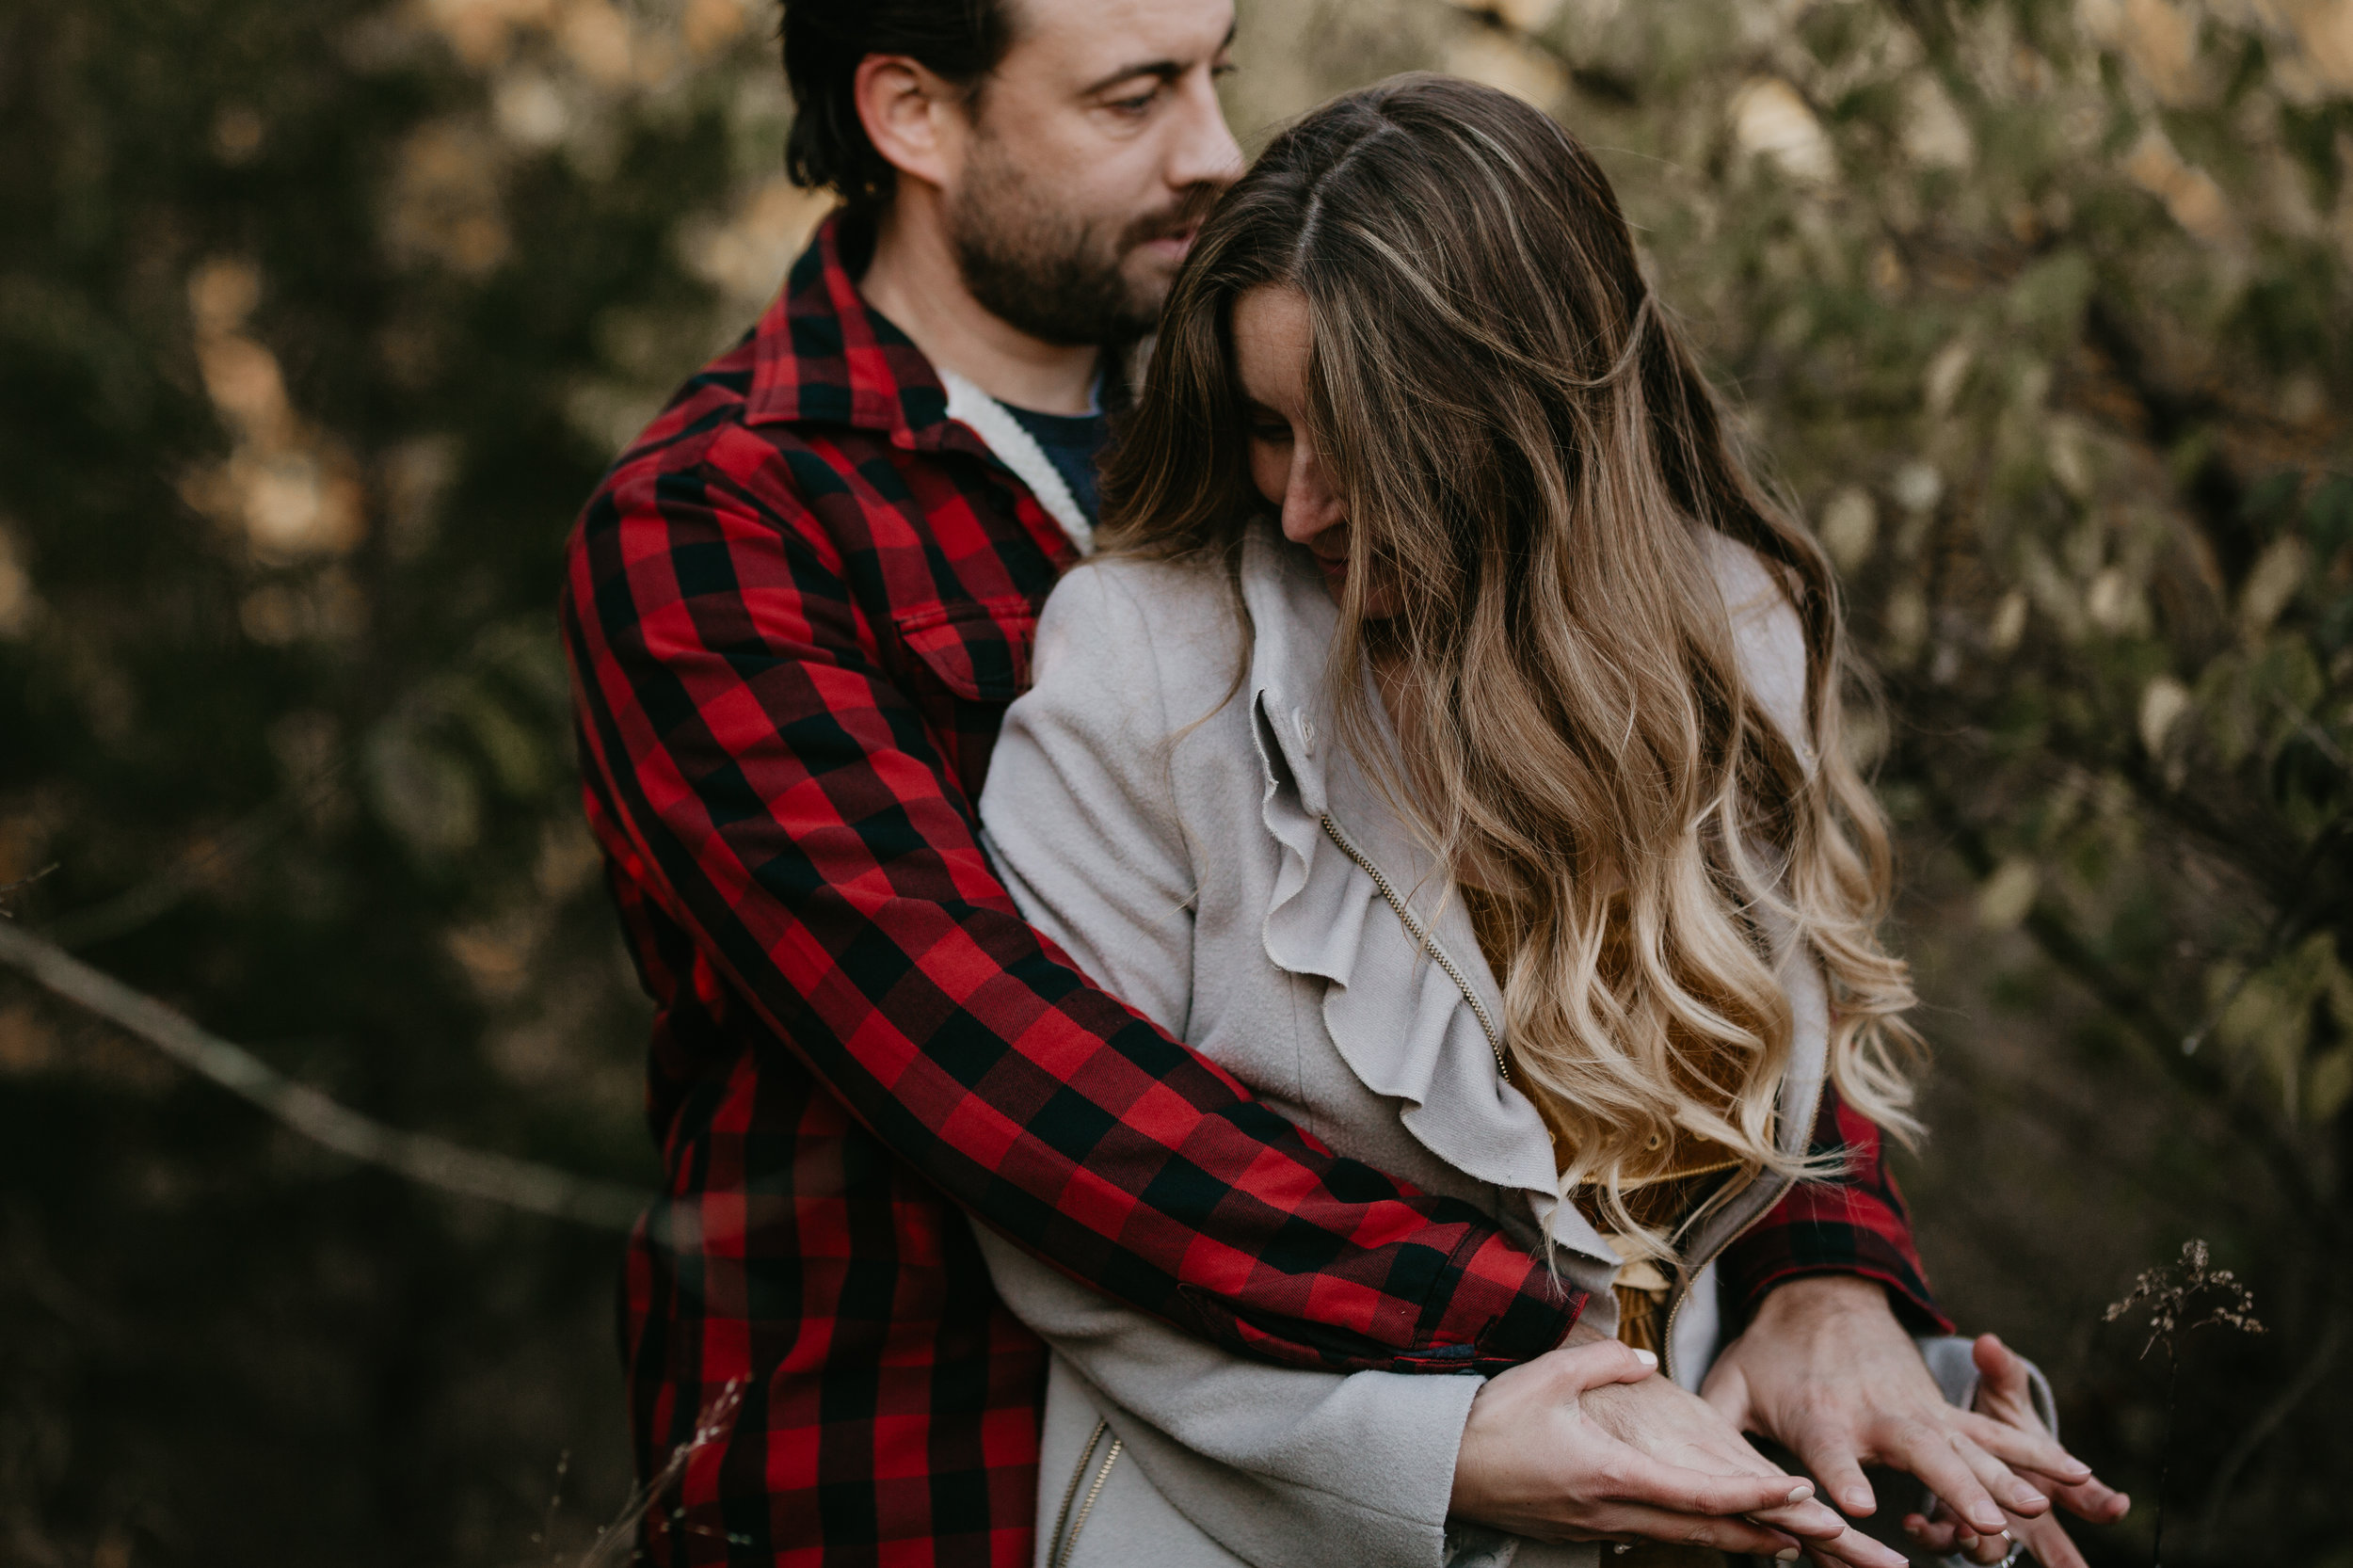 nicole-daacke-photography-white-cliffs-of-conoy-in-lancaster-pa-pennsylvania-adventure-session-adventure-elopement-photographer-engagement session-in-lancaster-pa-photographer-golden-sunset-winter-solstice-wedding-riverside-elopement-4689.jpg